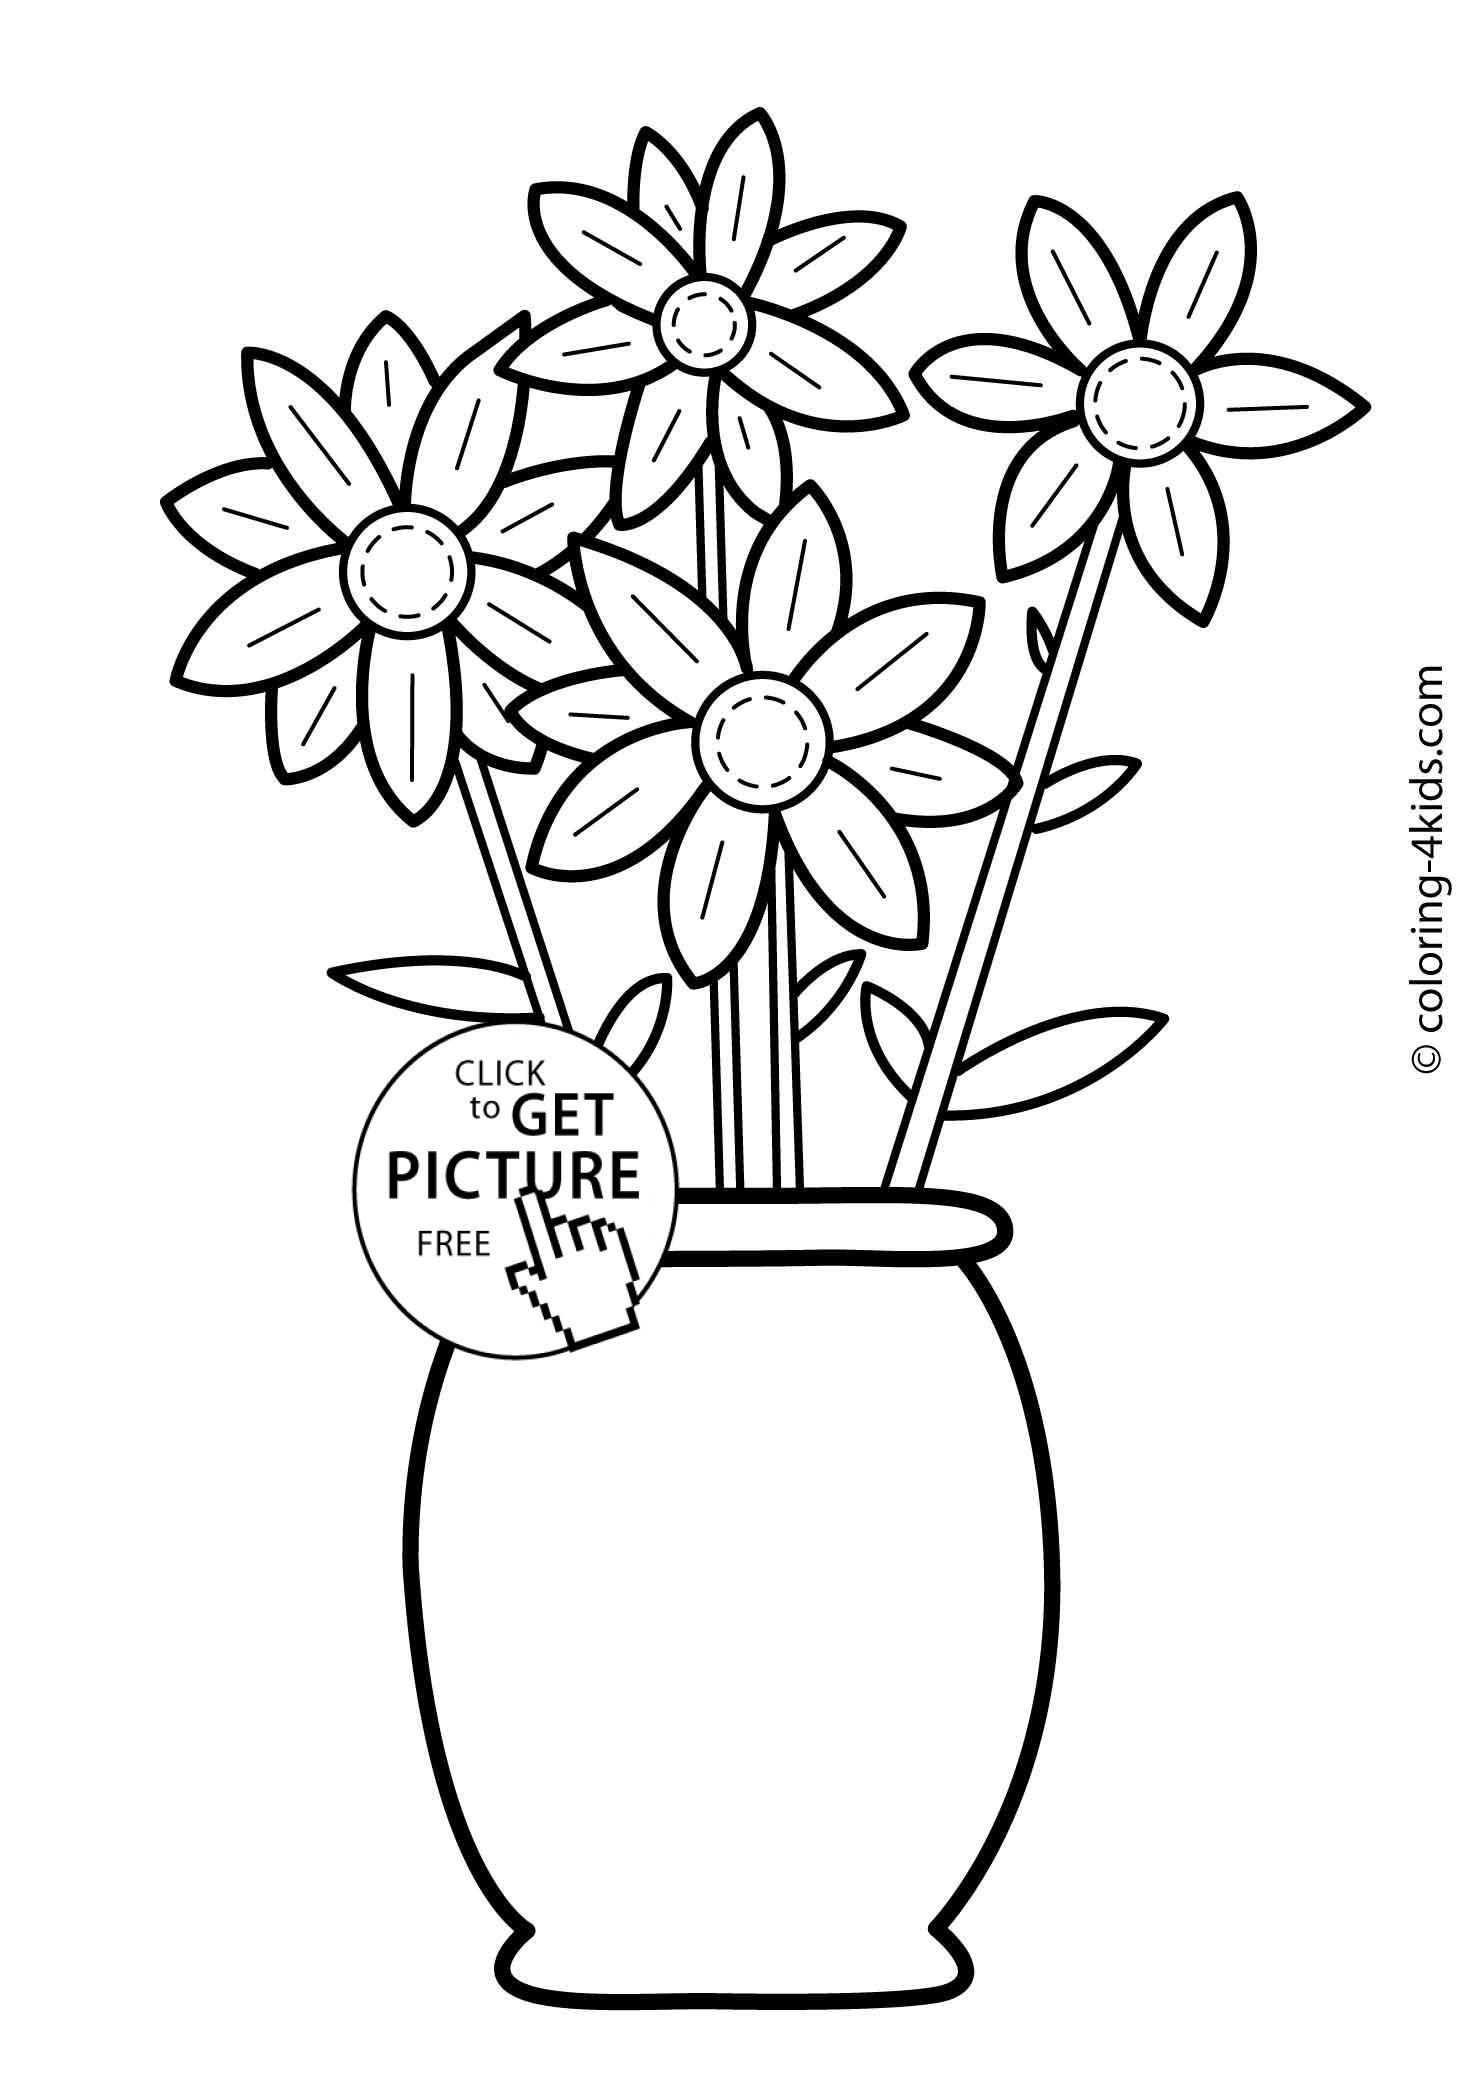 flower coloring pages for kids flowers coloring pages for kids printable 6 coloing pages coloring for kids flower